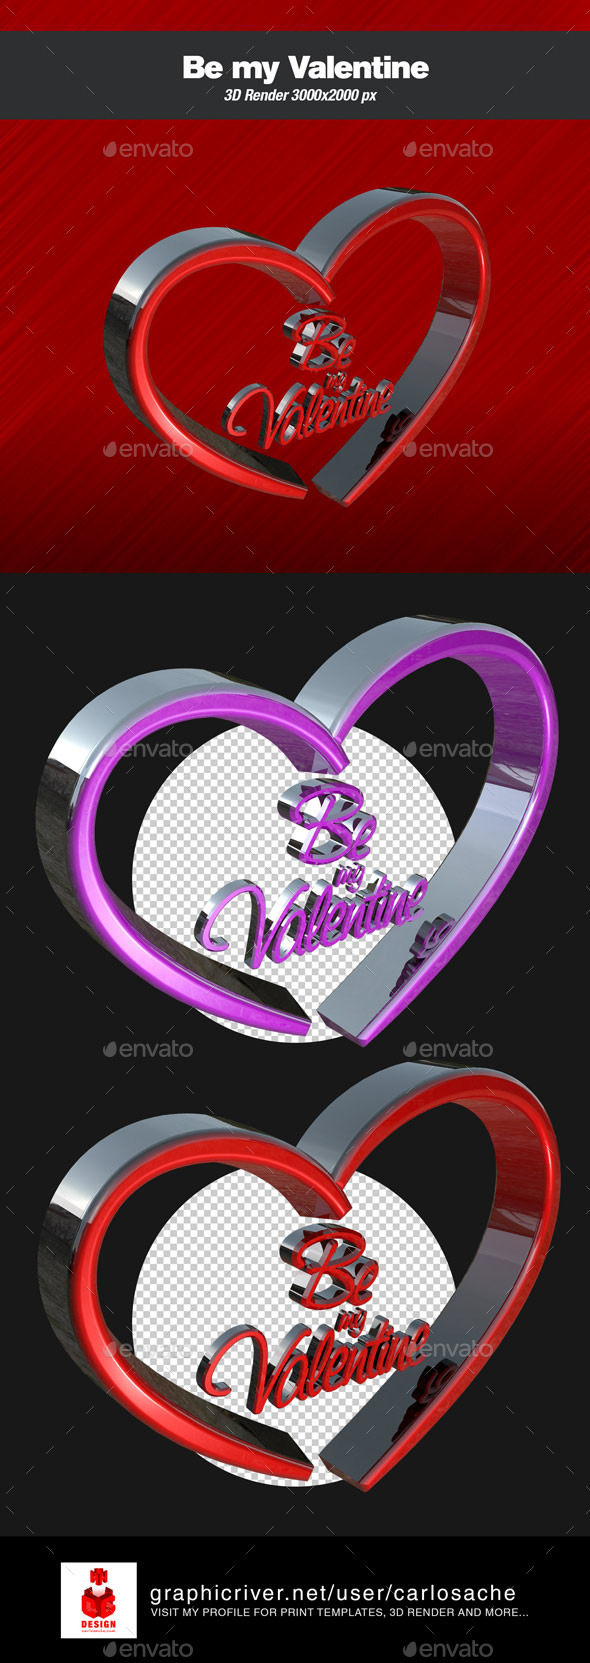 Be my Valentine - 3D Render Text